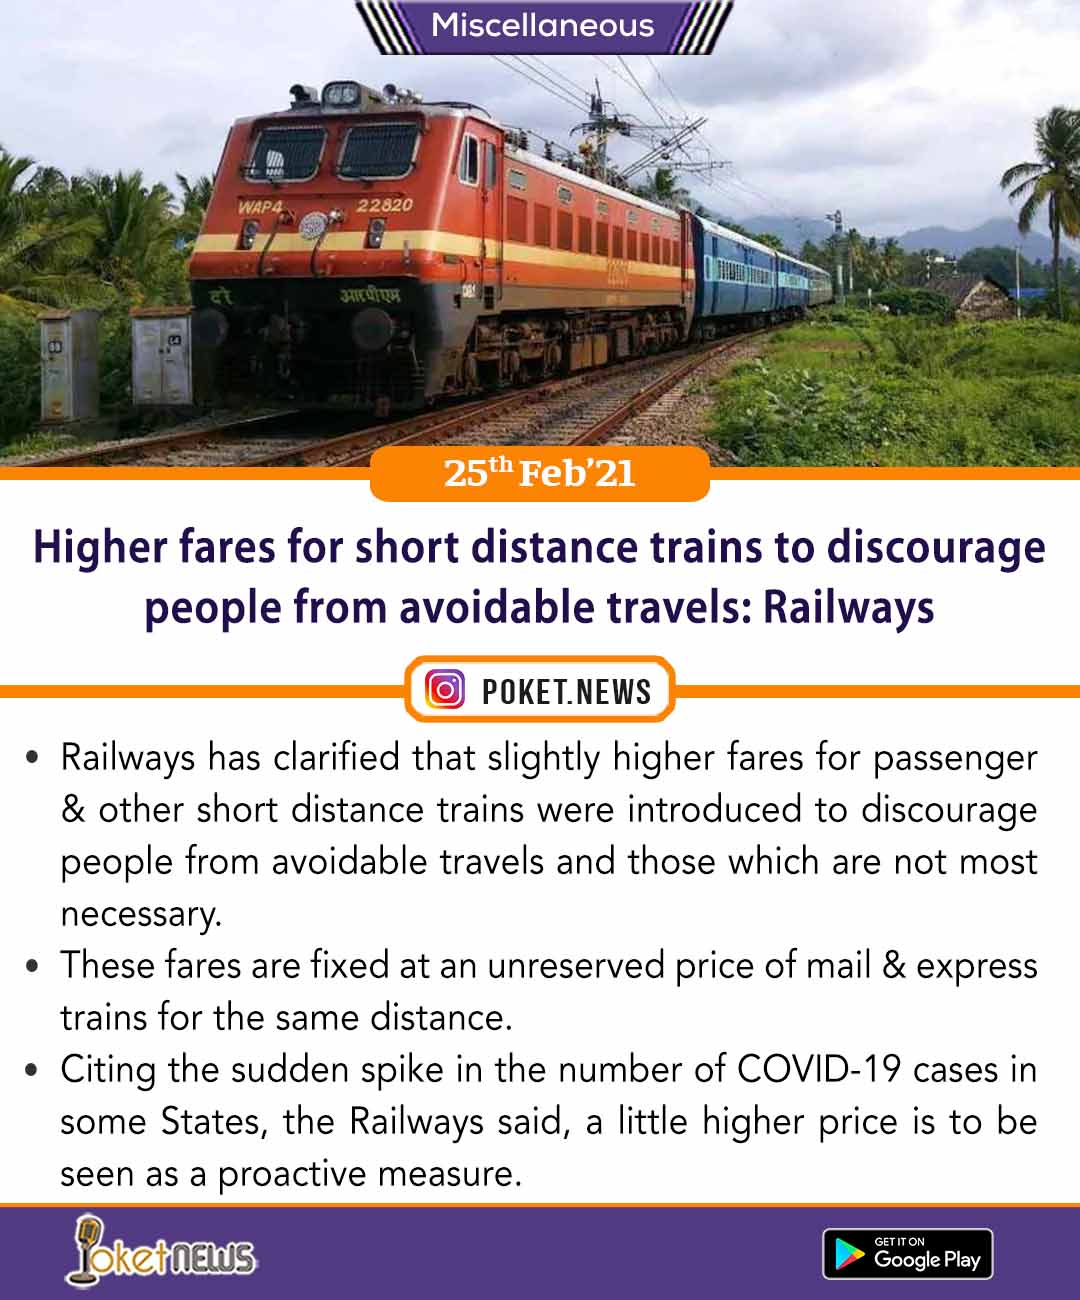 Higher fares for short distance trains to discourage people from avoidable travels: Railways